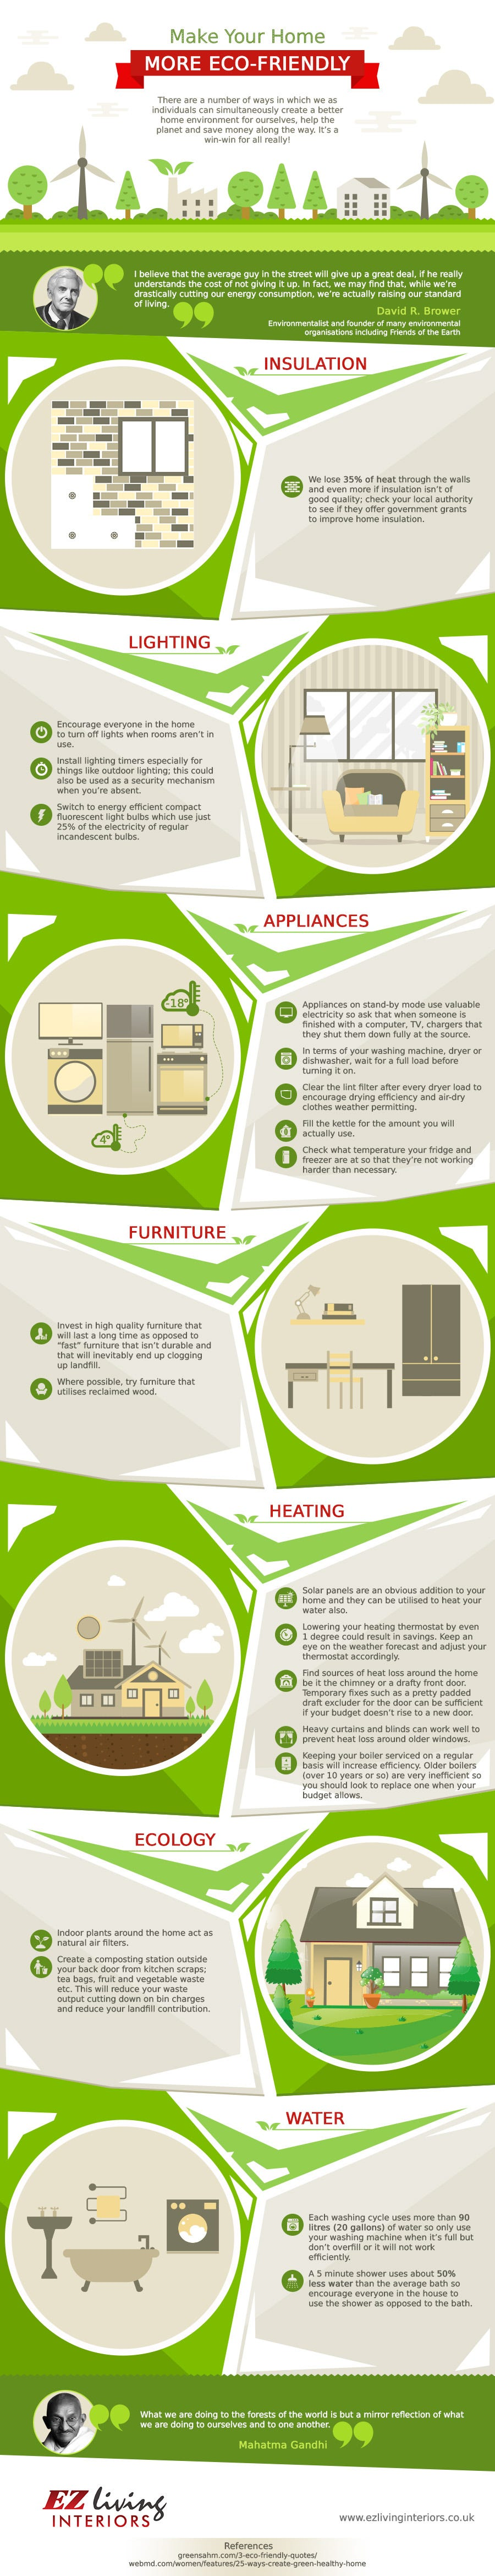 Infographic containing eco-friendly ideas for homeowners